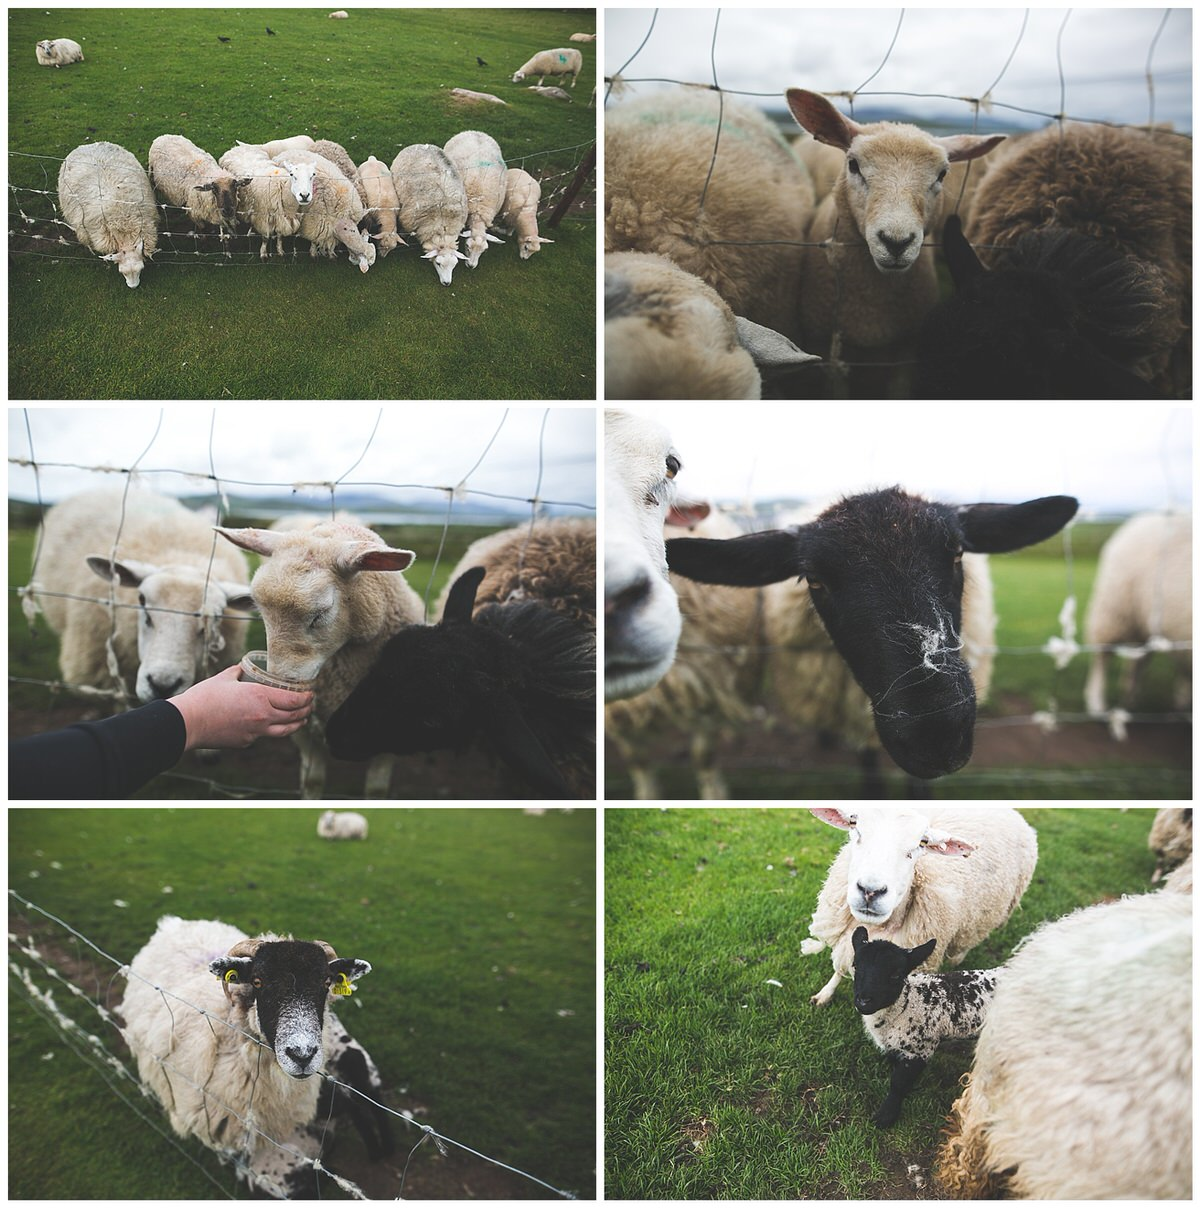 Sheep & lamb feeding during lambing season in Ireland